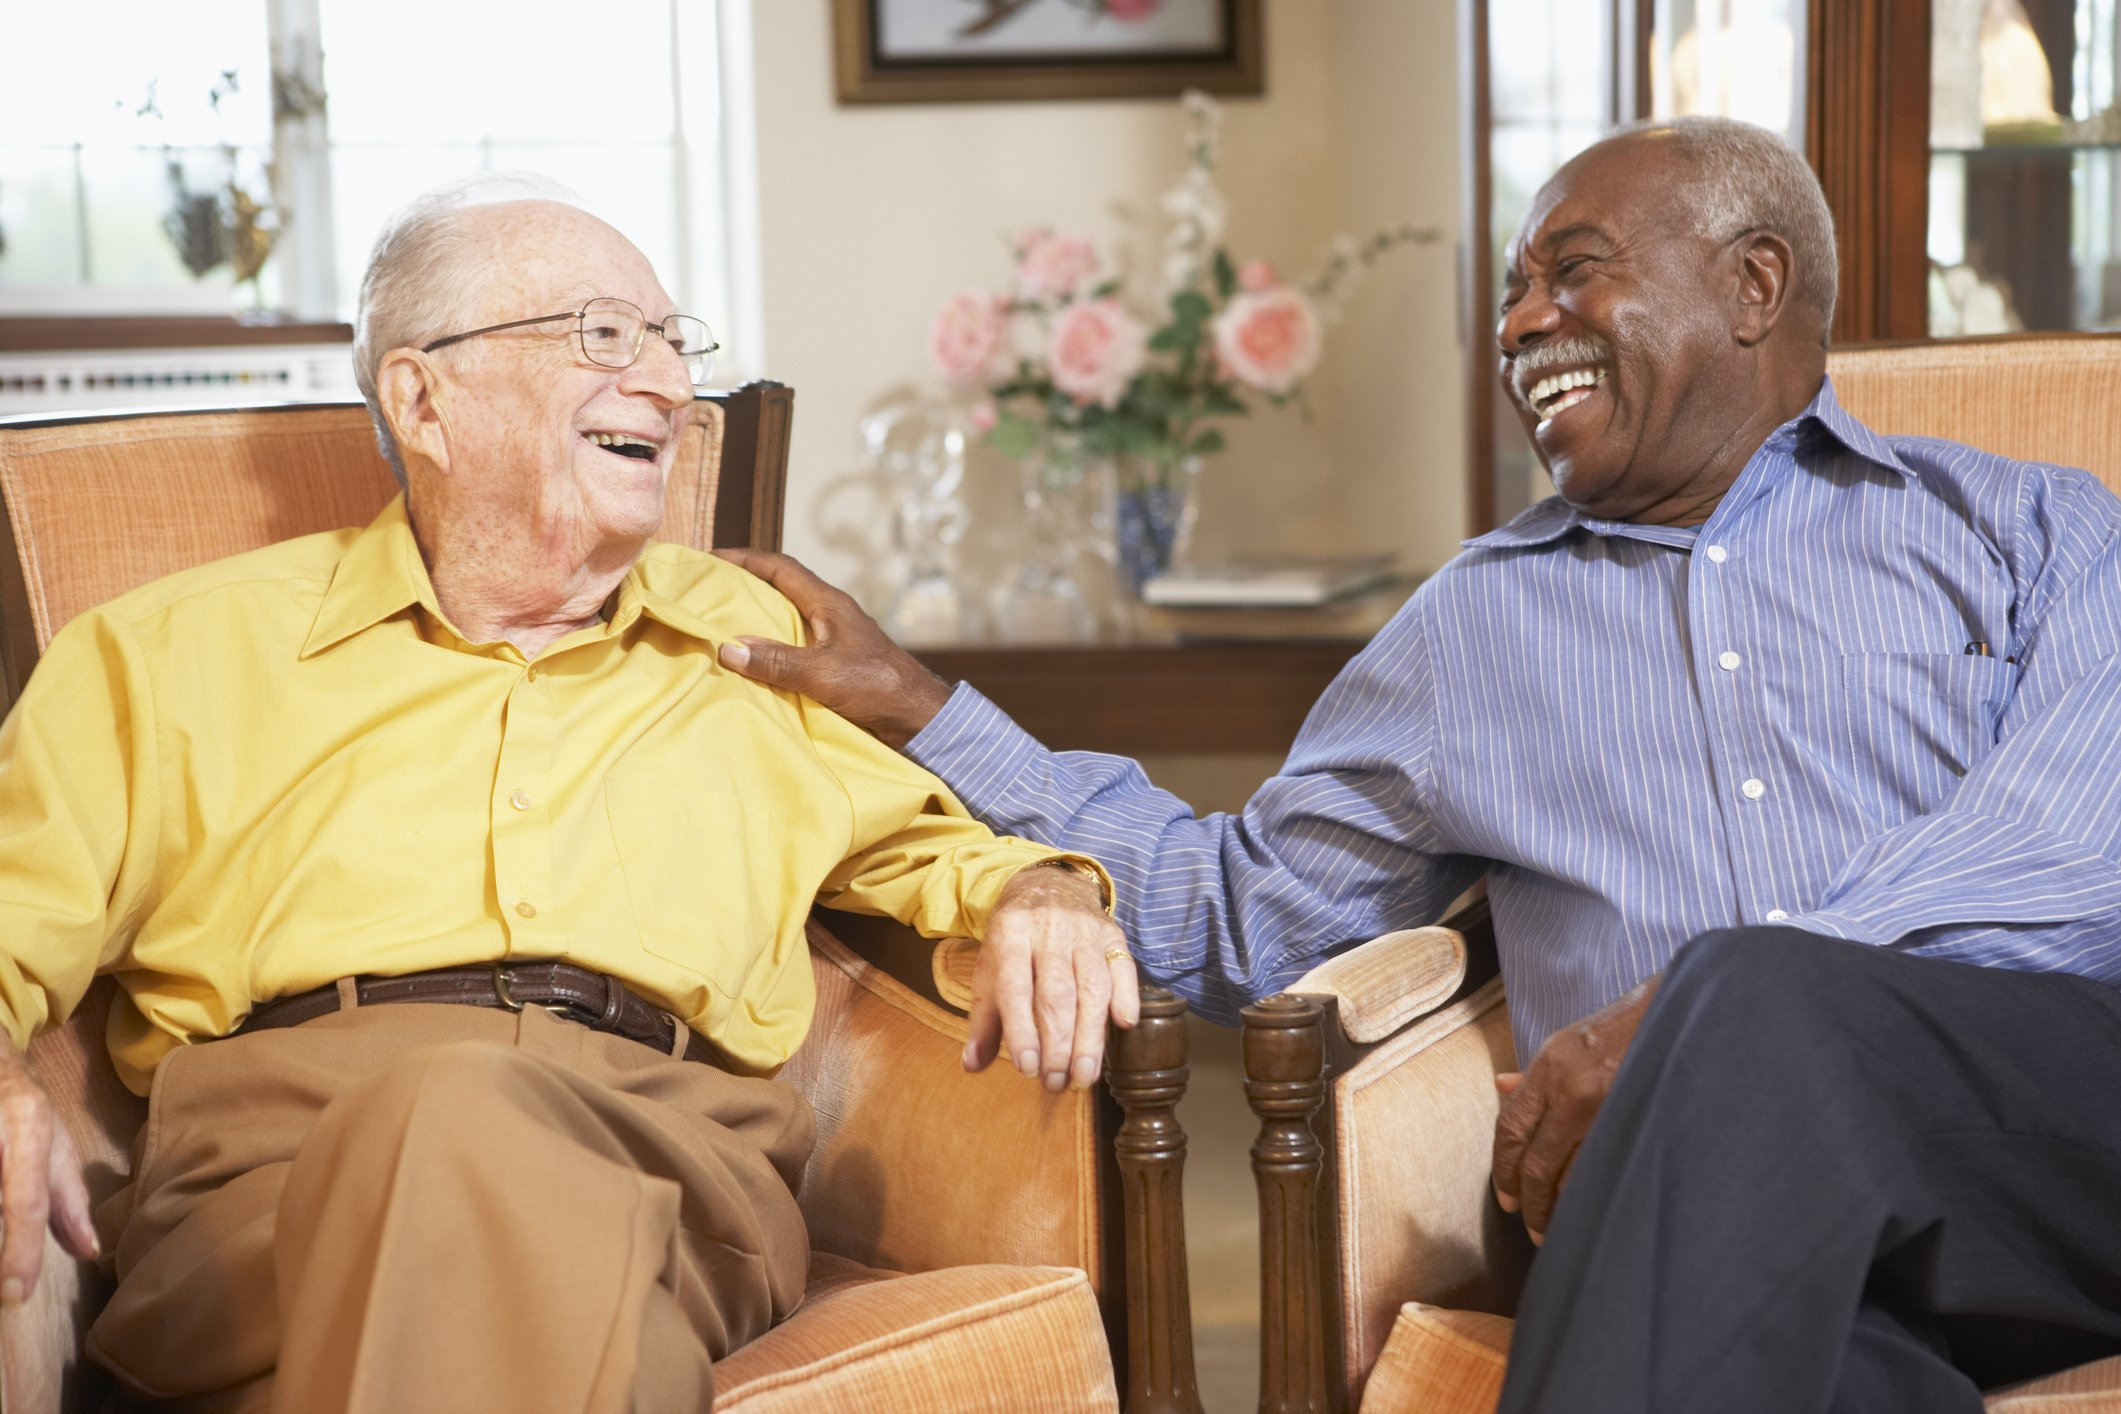 Aging men relaxing in armchairs and laughing together